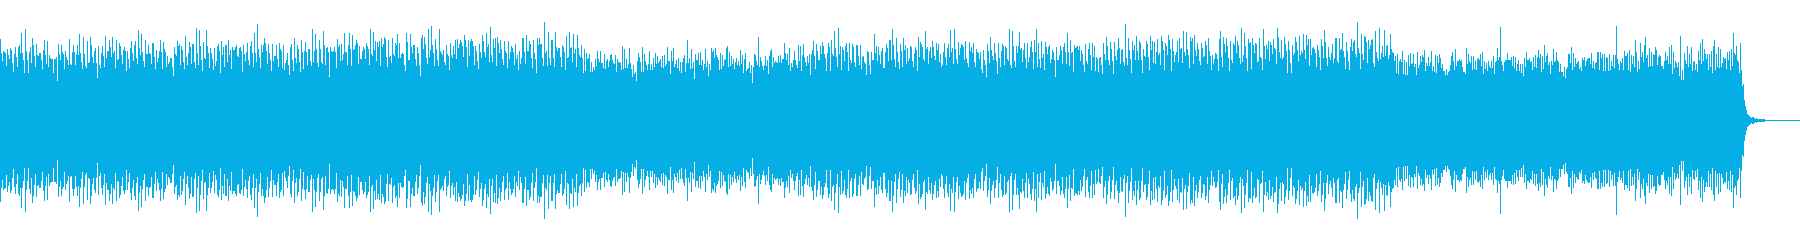 Corporate VP11 Corporate Refreshing's reproduced waveform